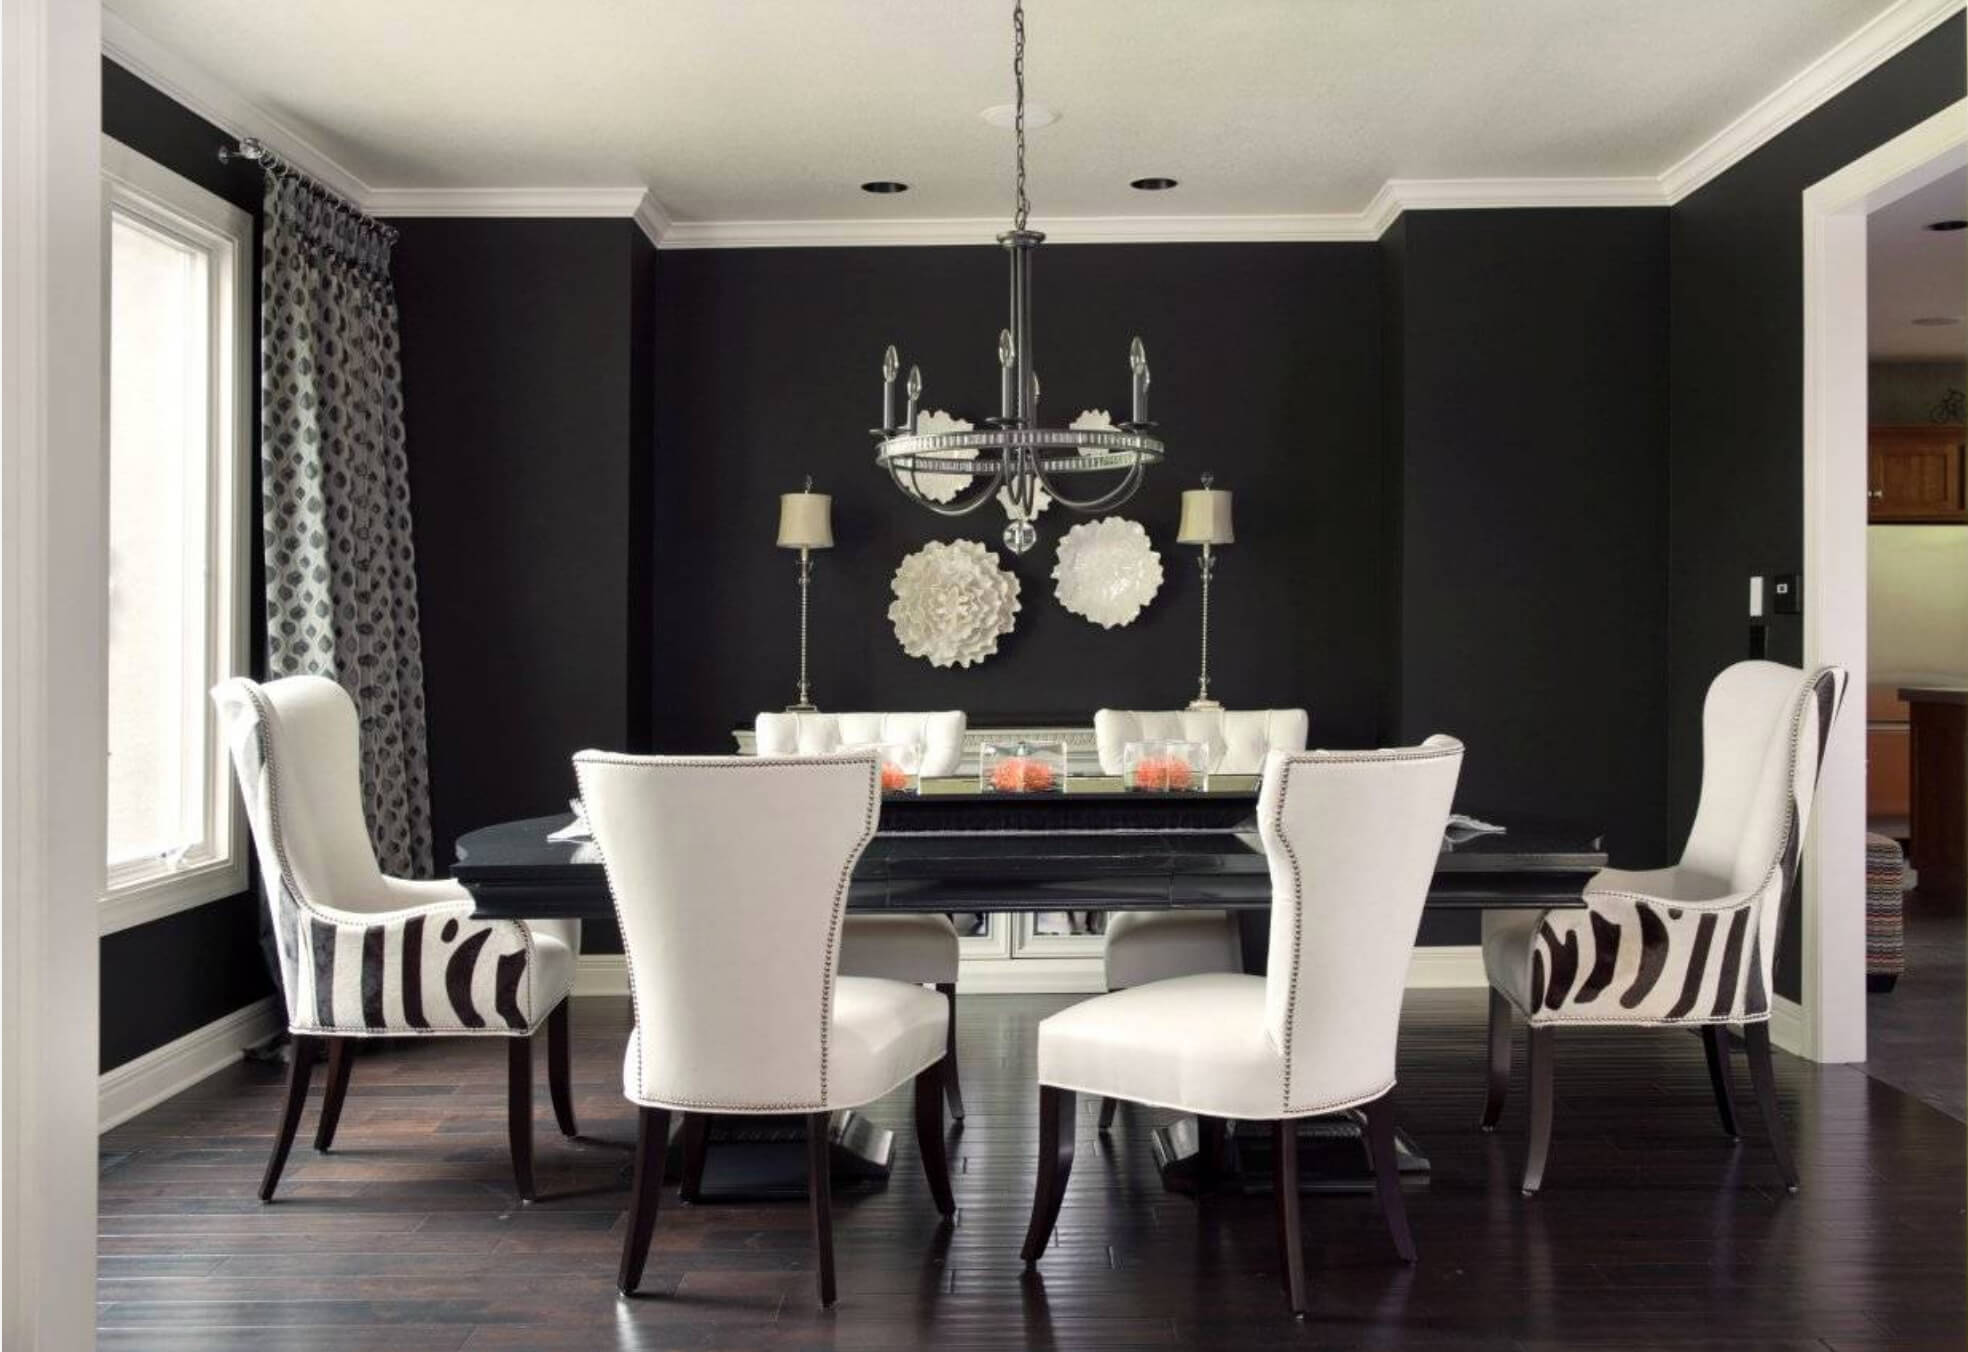 Latest Dining Table Designs 10 Creative Ideas for Dining Room Walls